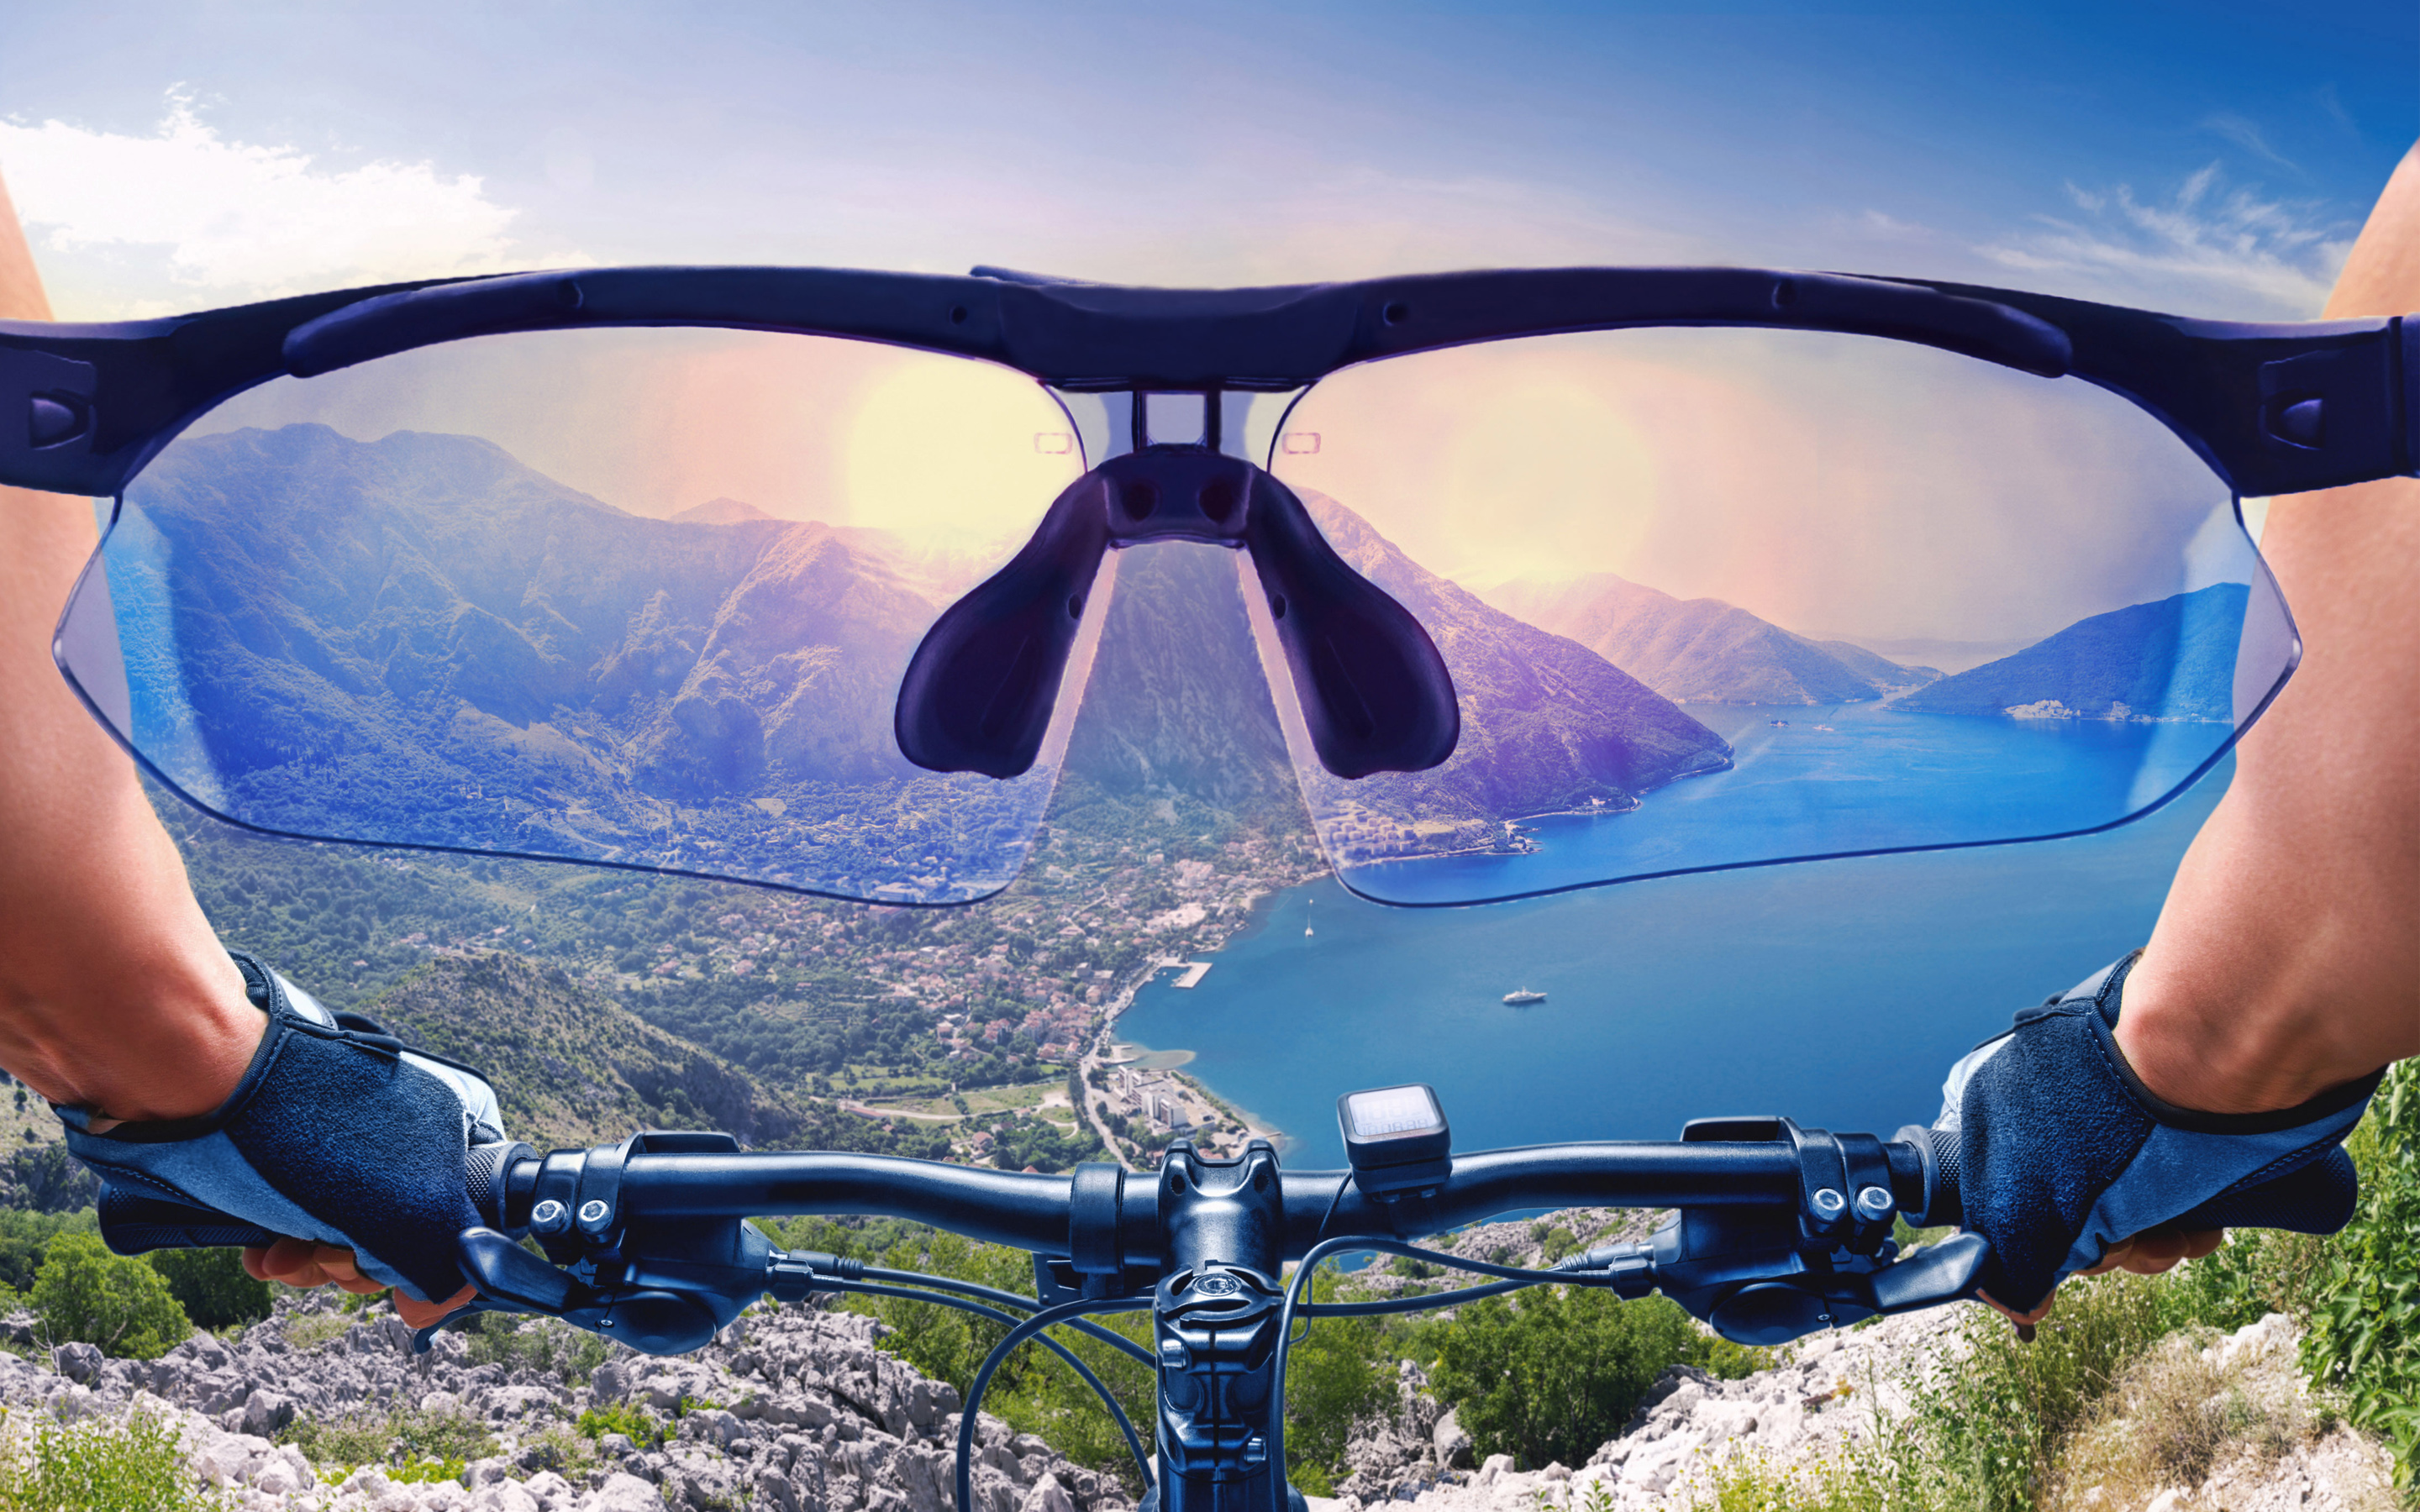 HD Wallpapers Bicycle Mountain View